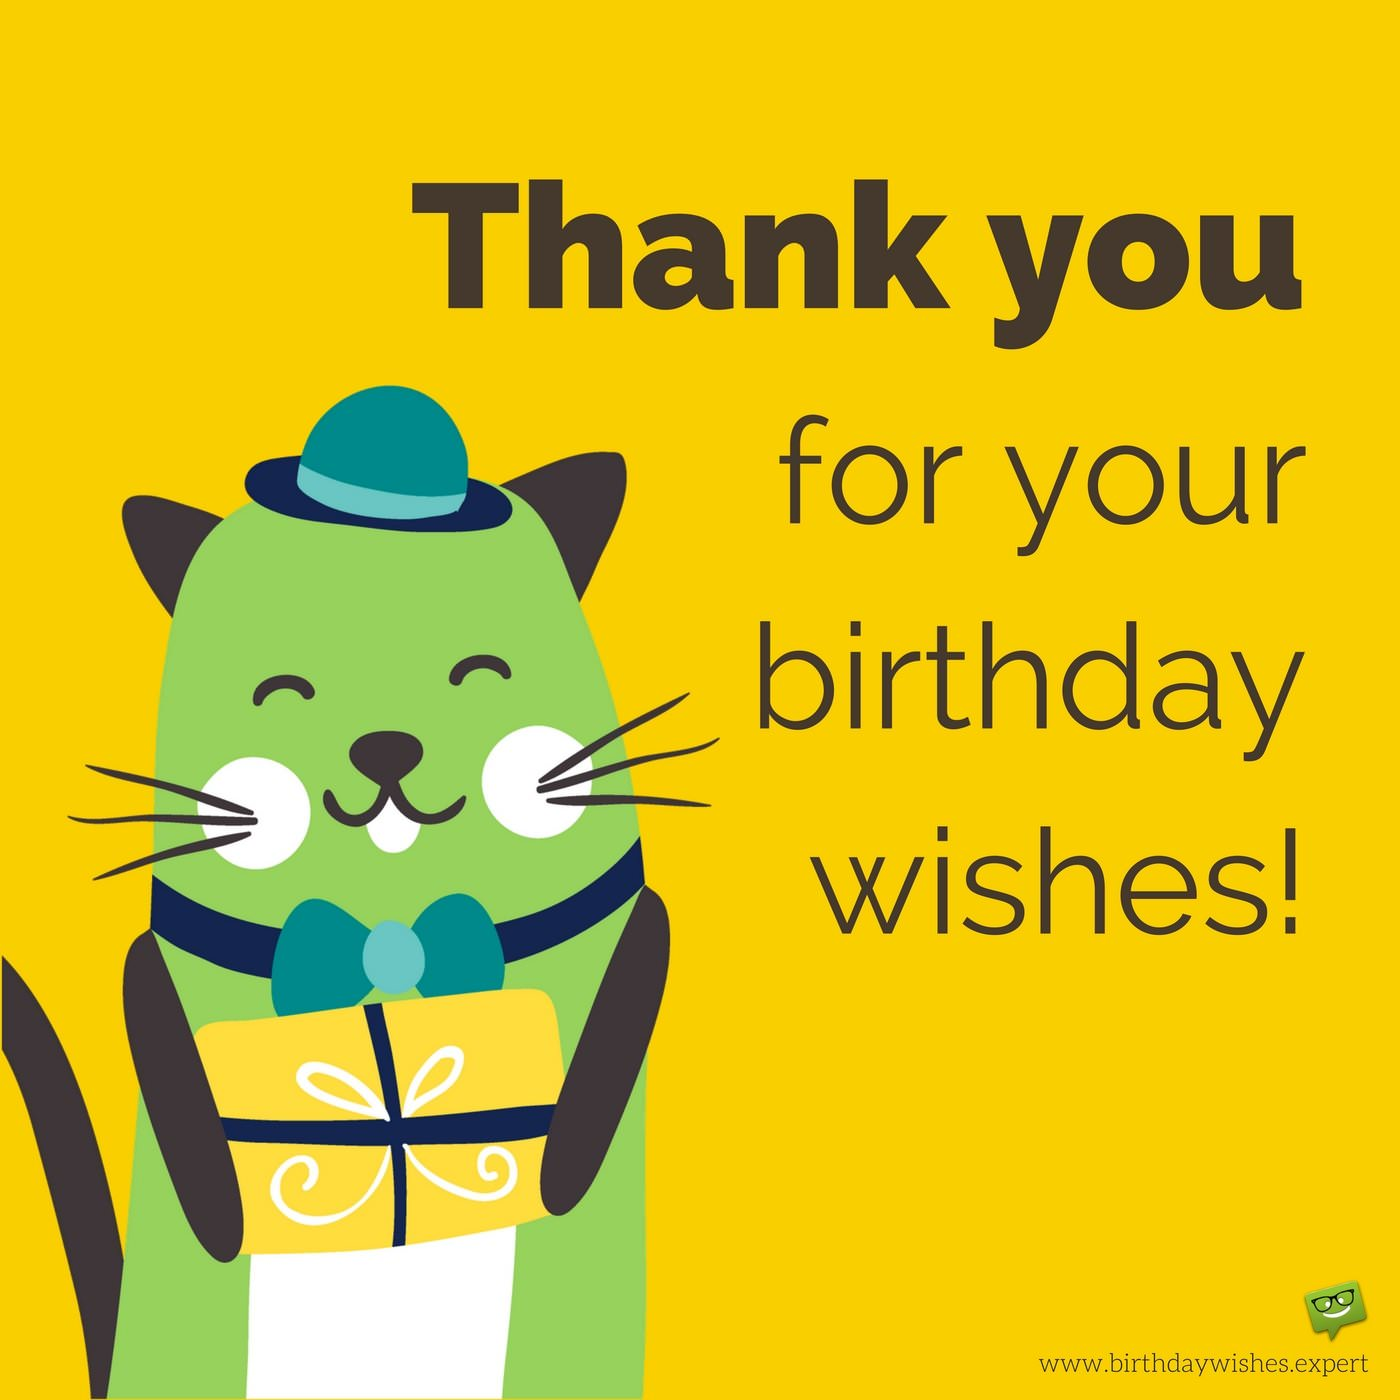 thank you message for birthday well wishers ; Cute-thank-you-for-your-birthday-wishes-message-on-image-with-funny-animal-holding-a-gift